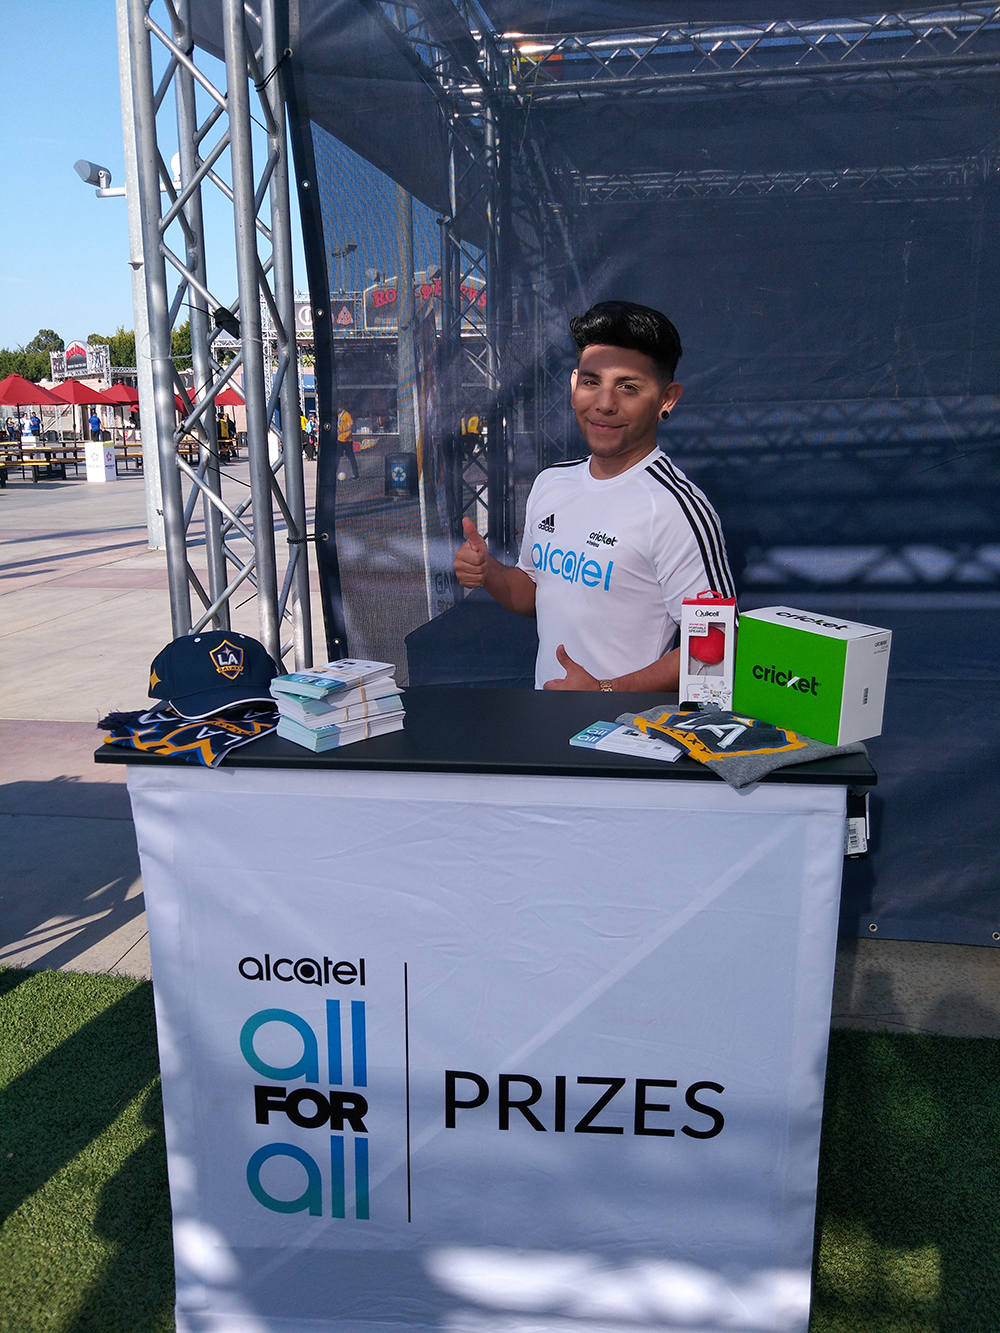 Alcatel_Pulse_LA_Galaxy_Sponsor_Booth_Pic1_ON_DECK_CS.jpg